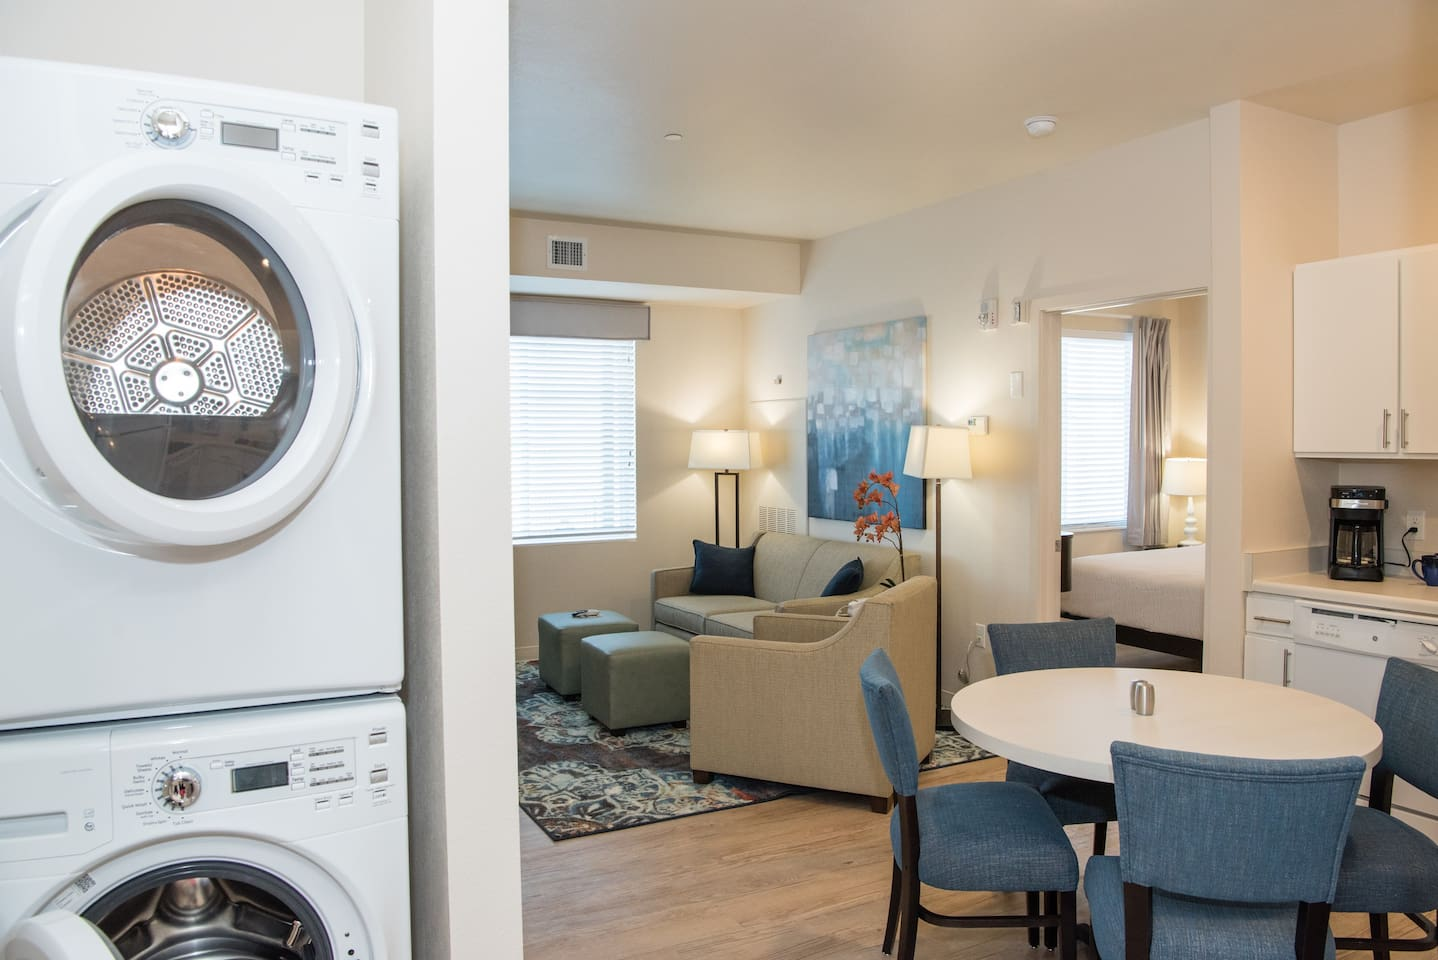 We offer 1, 2 and 3 bedroom furnished and unfurnished apartments. We offer weekly and monthly rates.